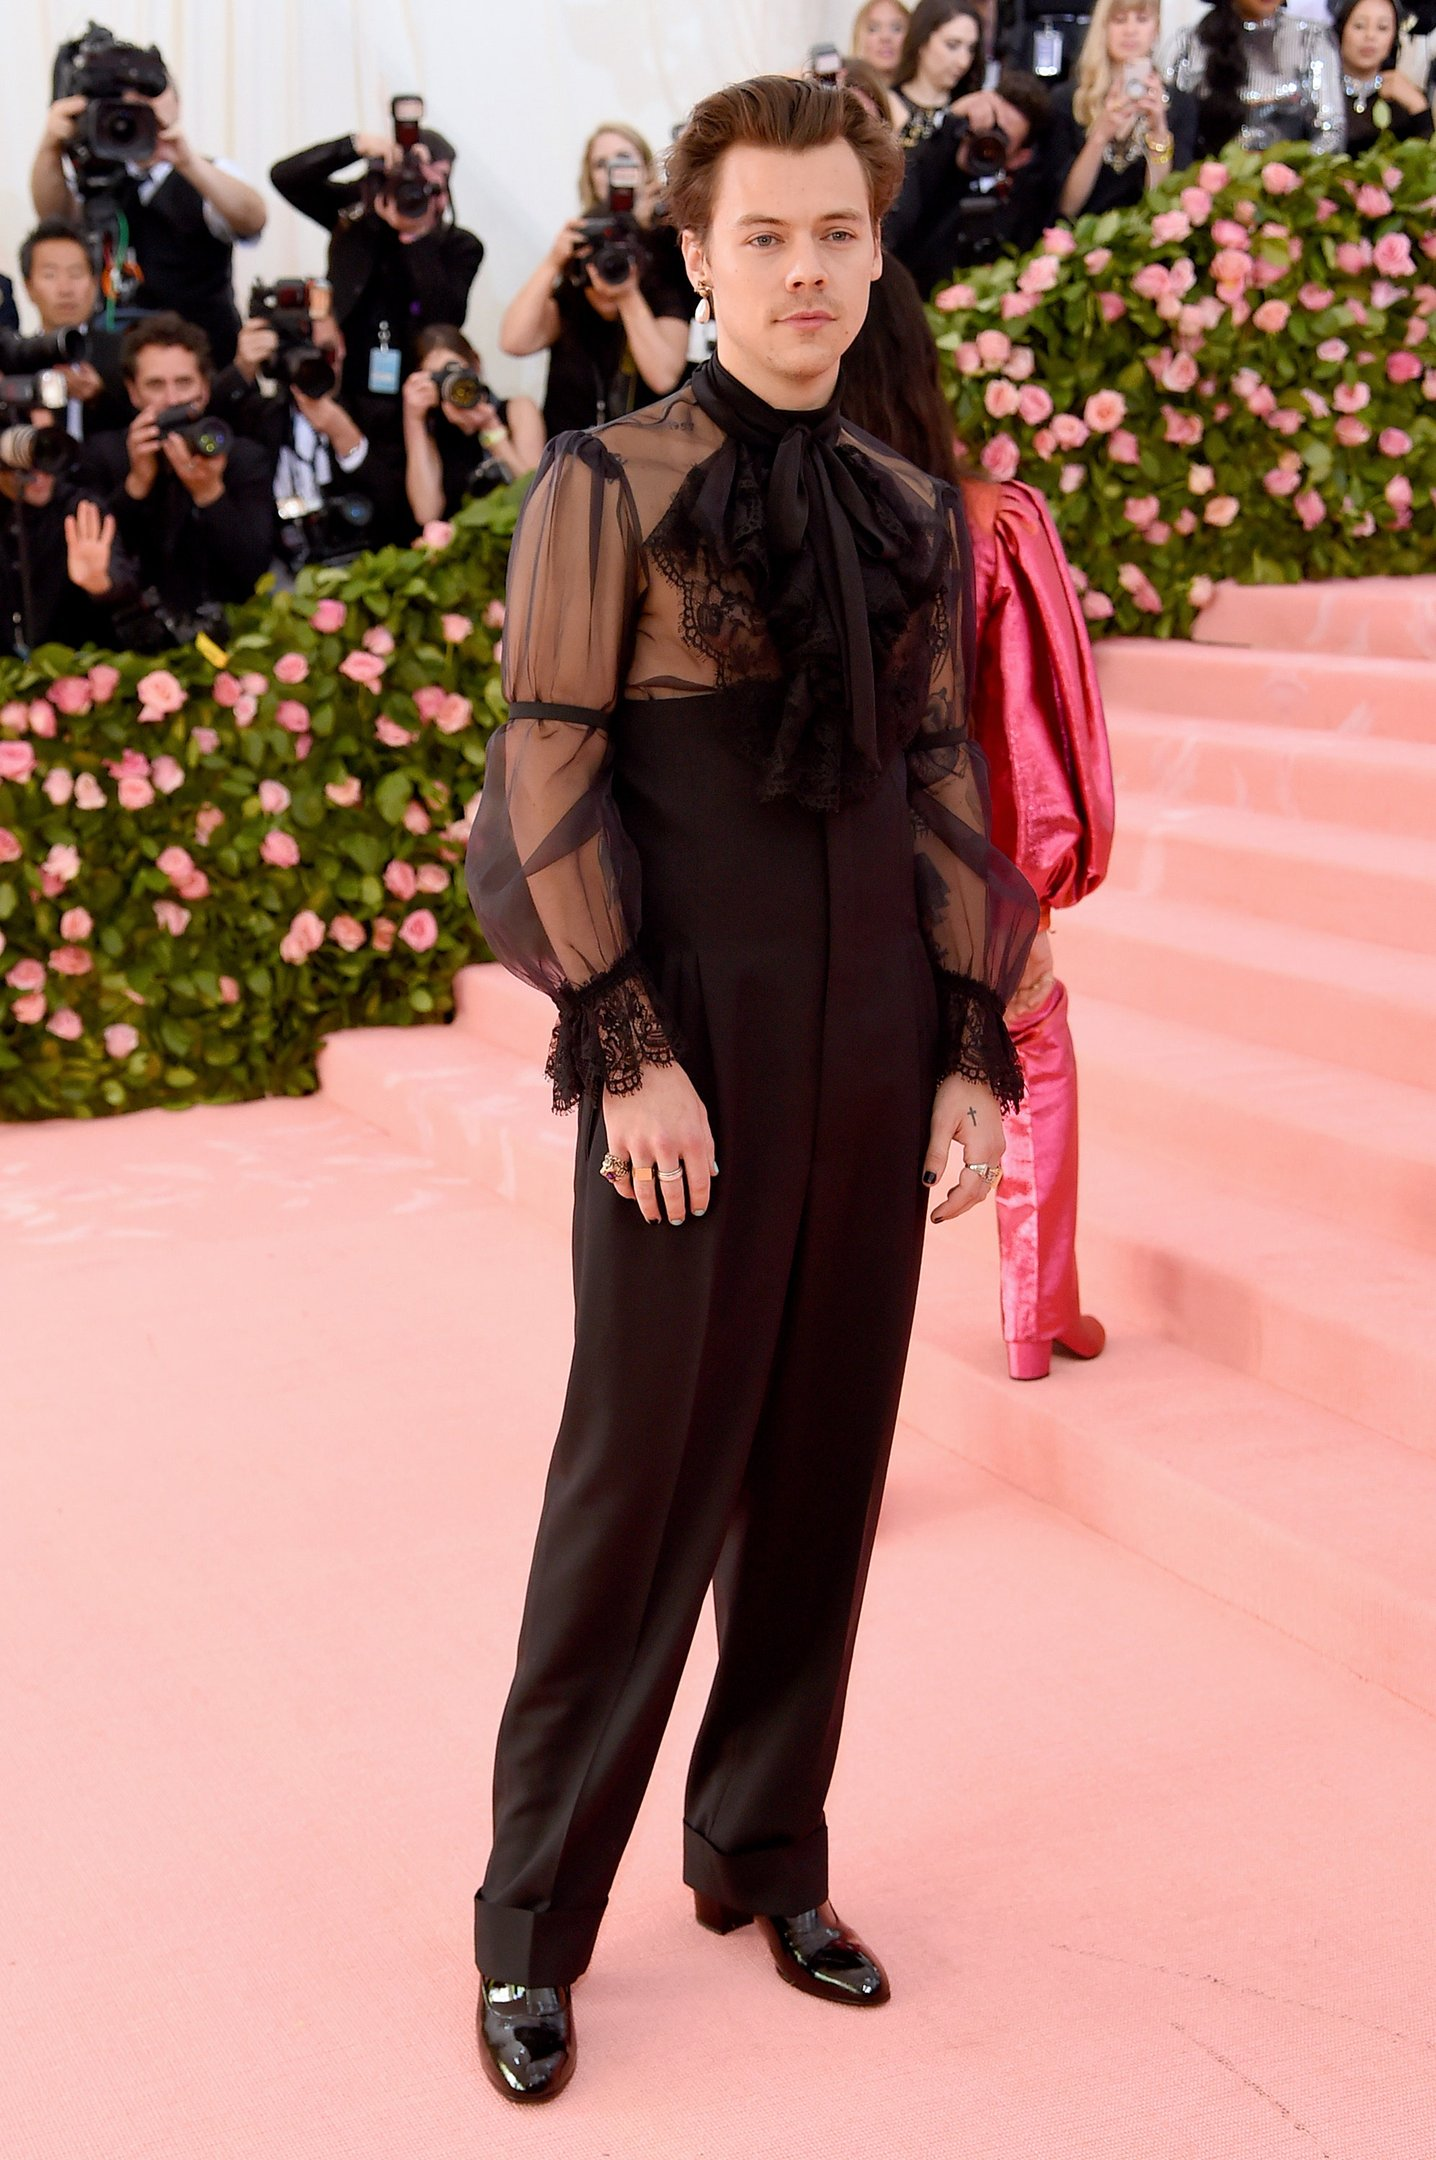 Harry Styles - Gucci - Met gala - Outono - Street Style - https://stealthelook.com.br